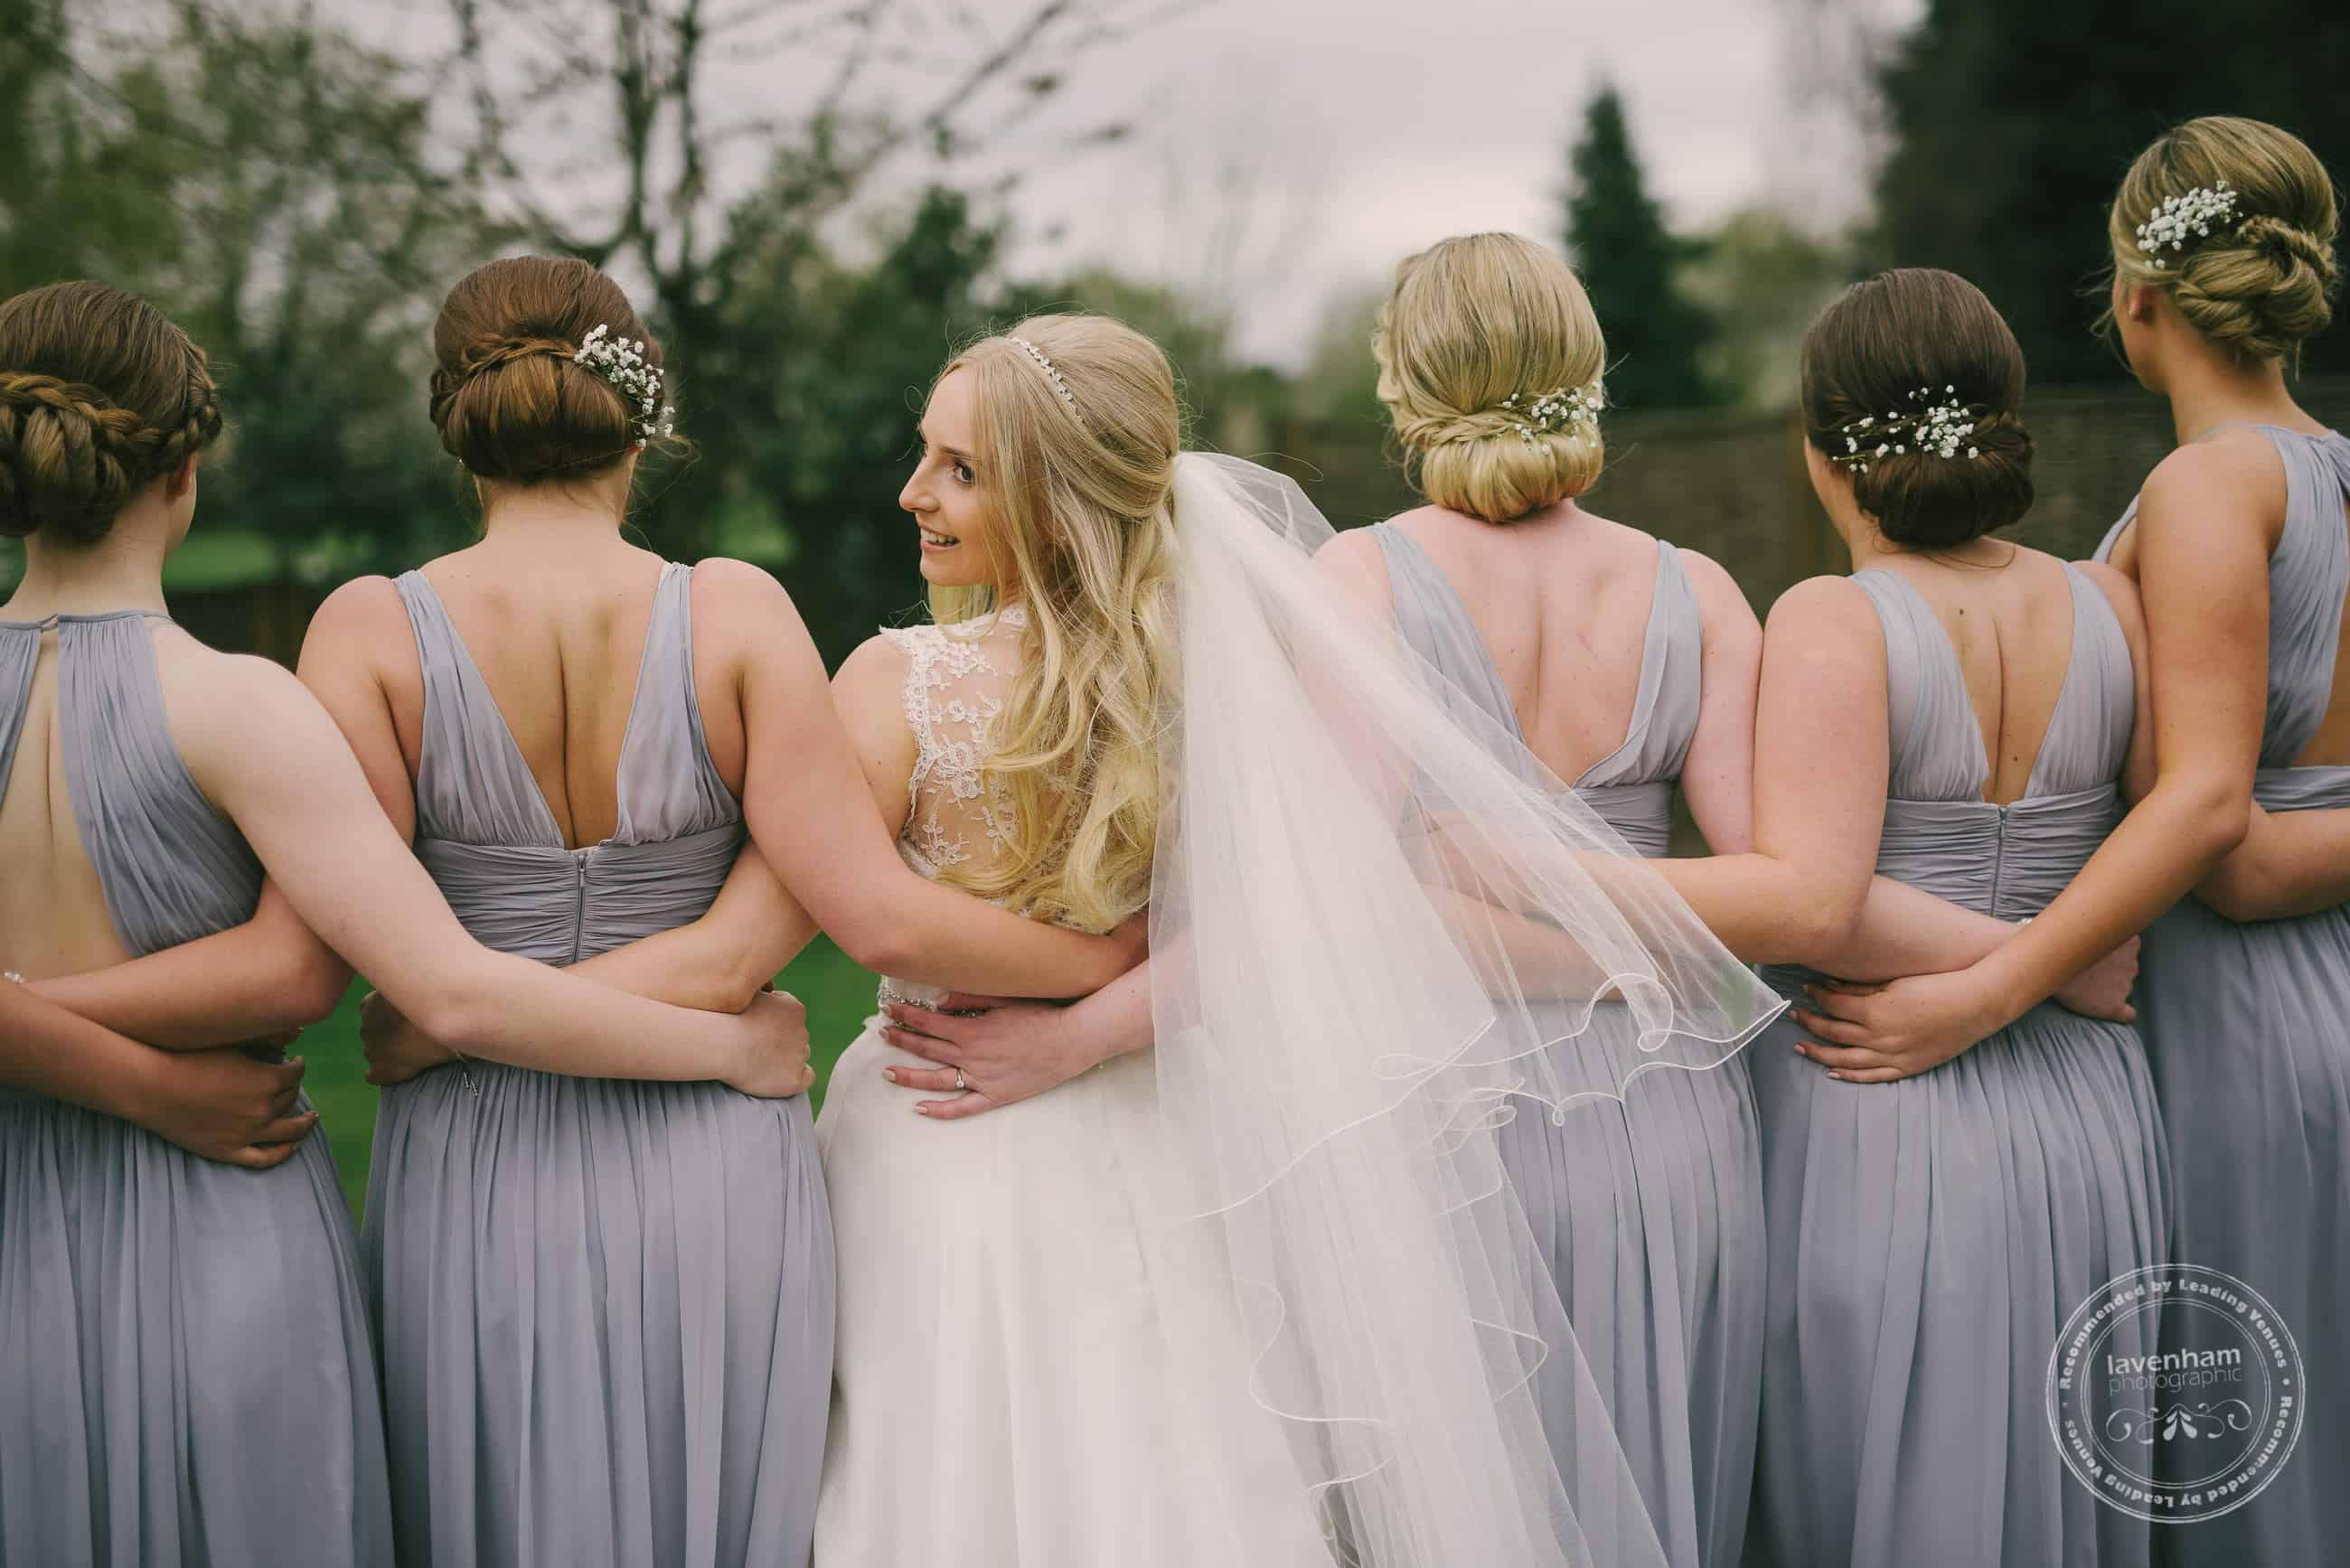 Bride, with her bridesmaids. This photo shows off the bridesmaids dress colours and the hairdo's of the girls